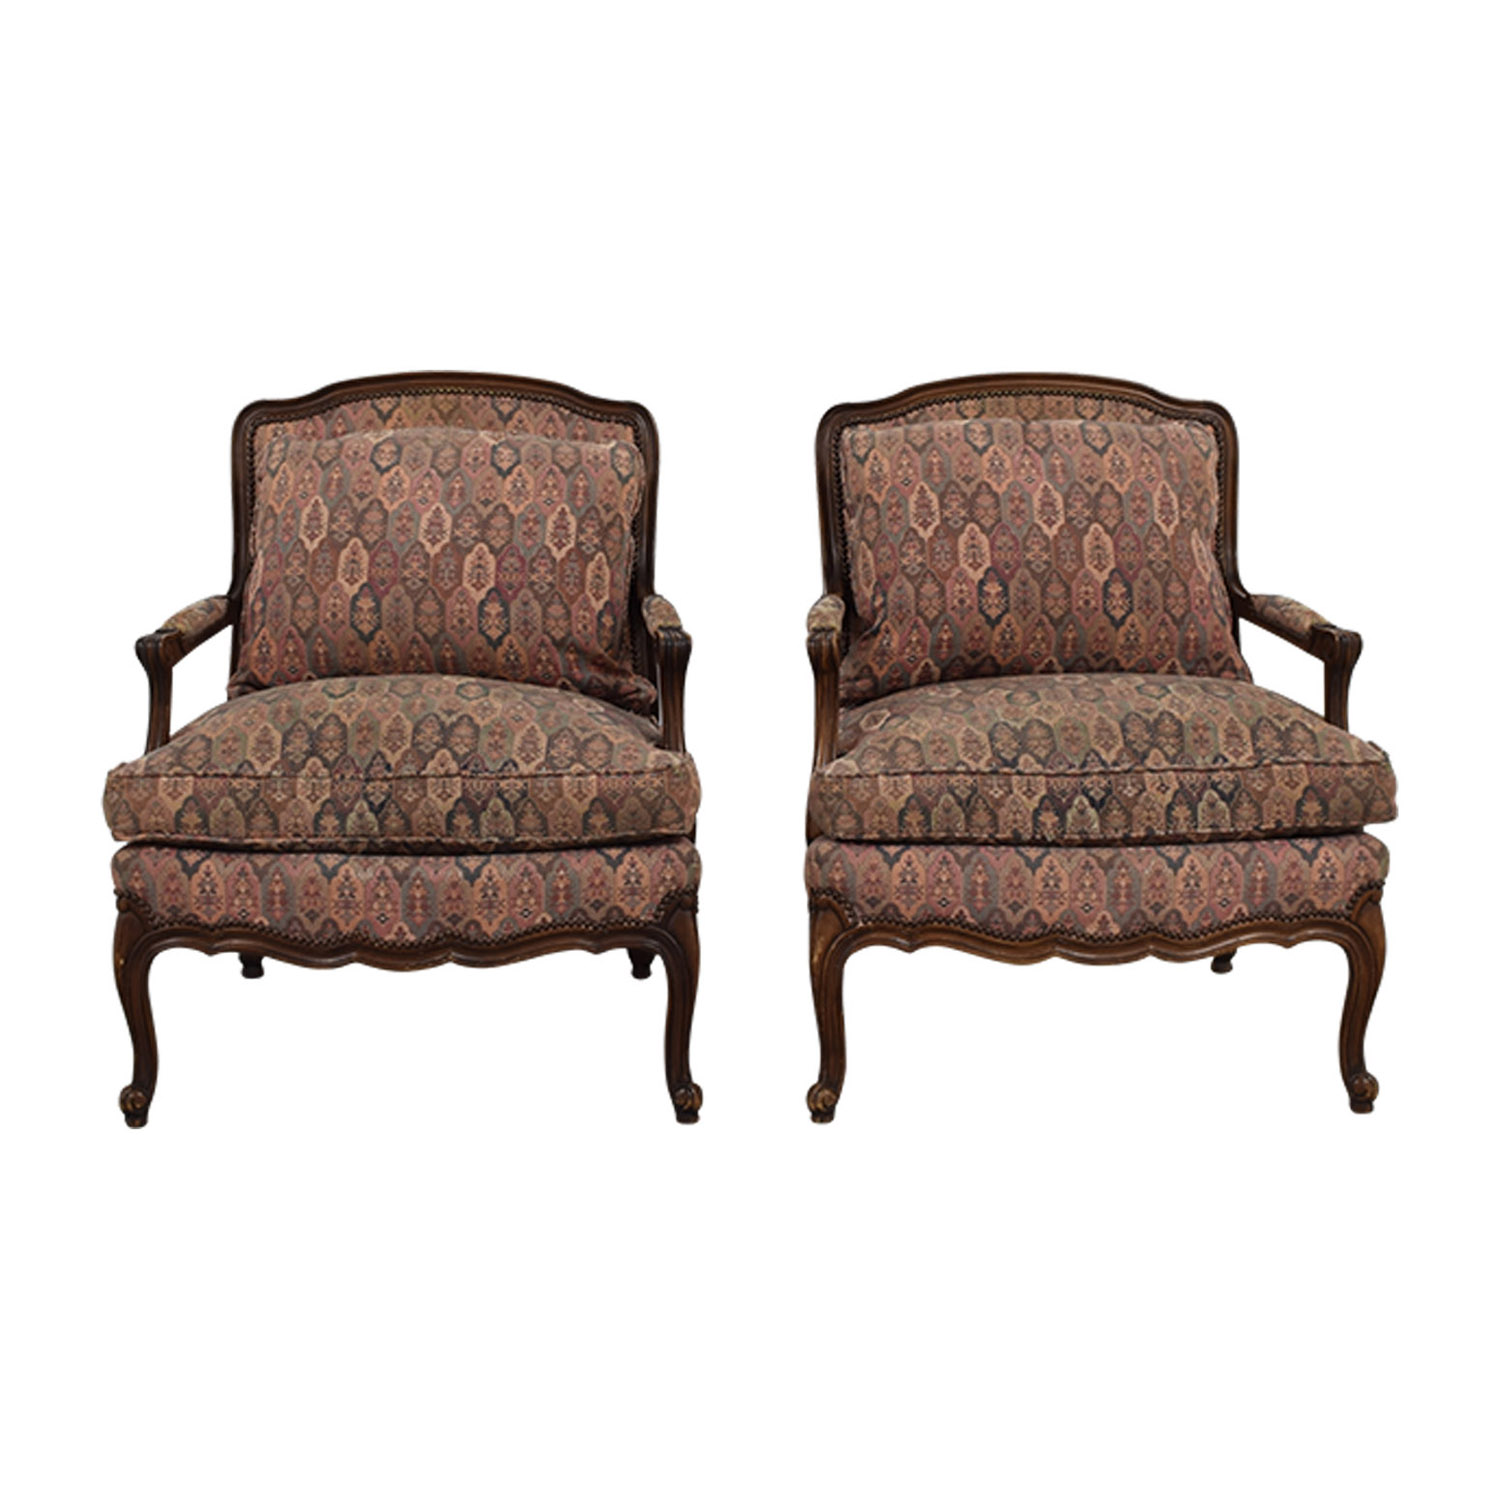 TRS Furniture TRS Furniture Low Wing Back Arm Chairs nyc